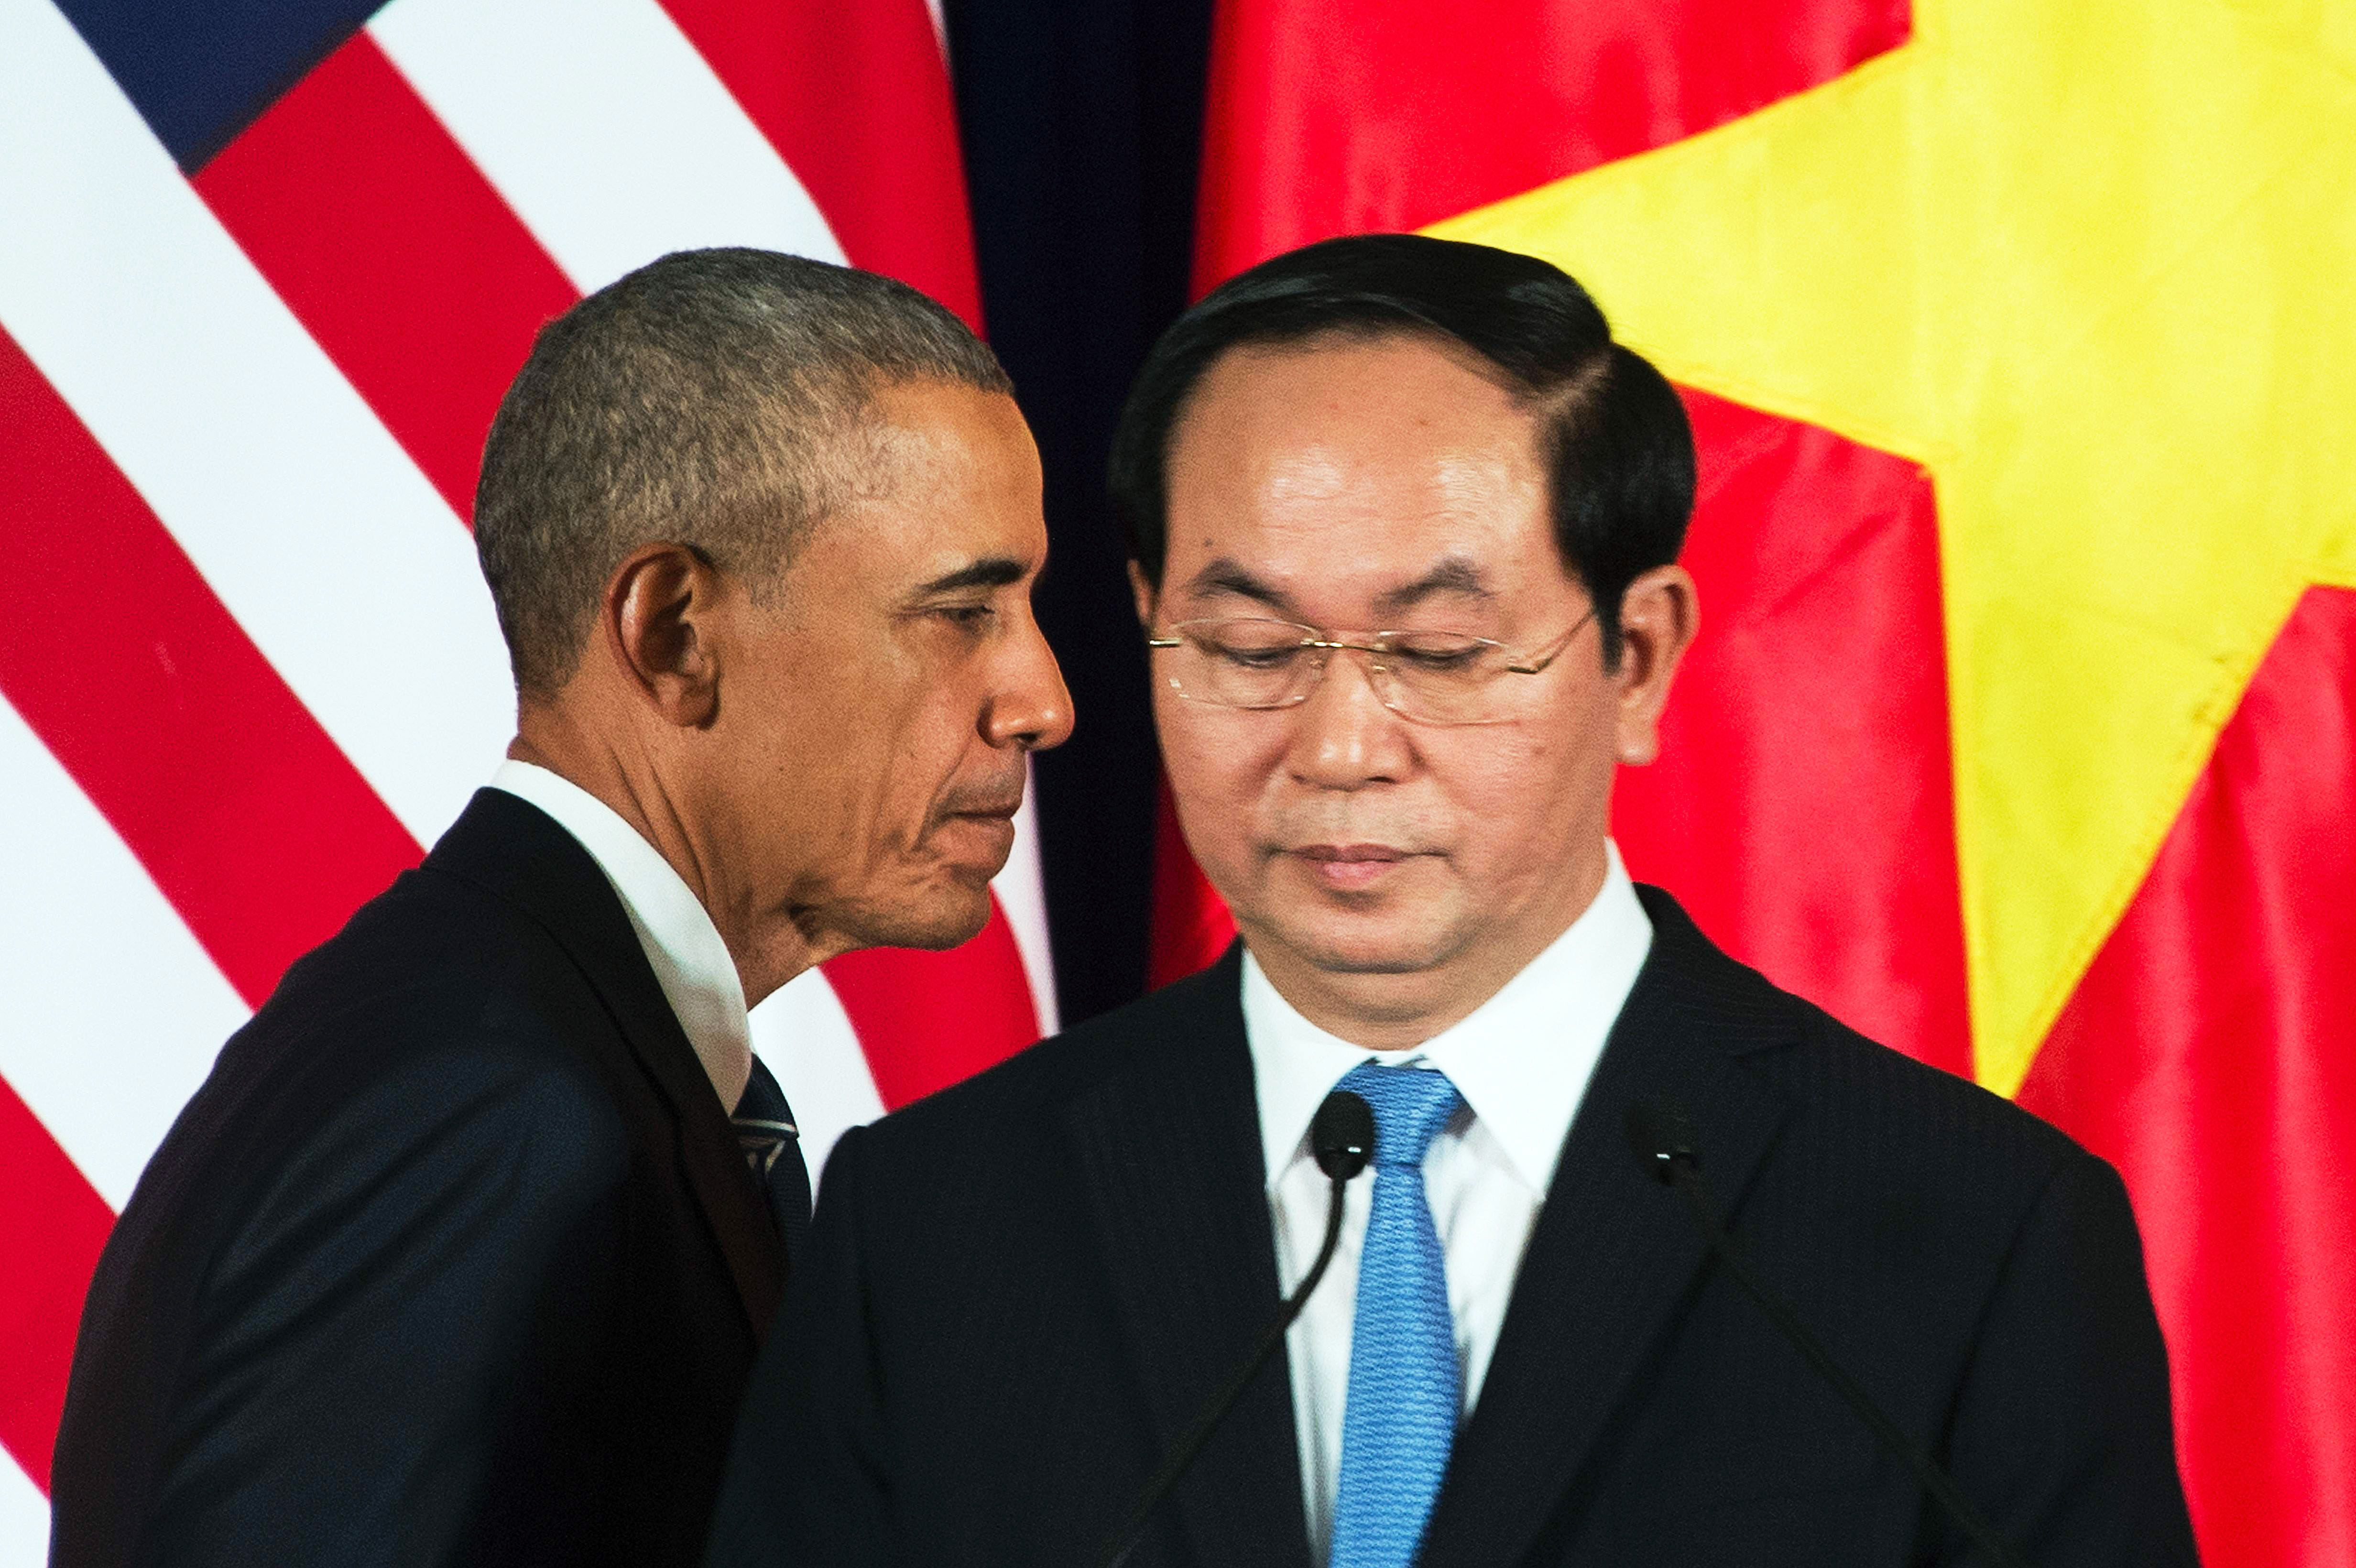 President Barack Obama and President Tran Dai Quang take part in a joint press conference in Hanoi on May 23.